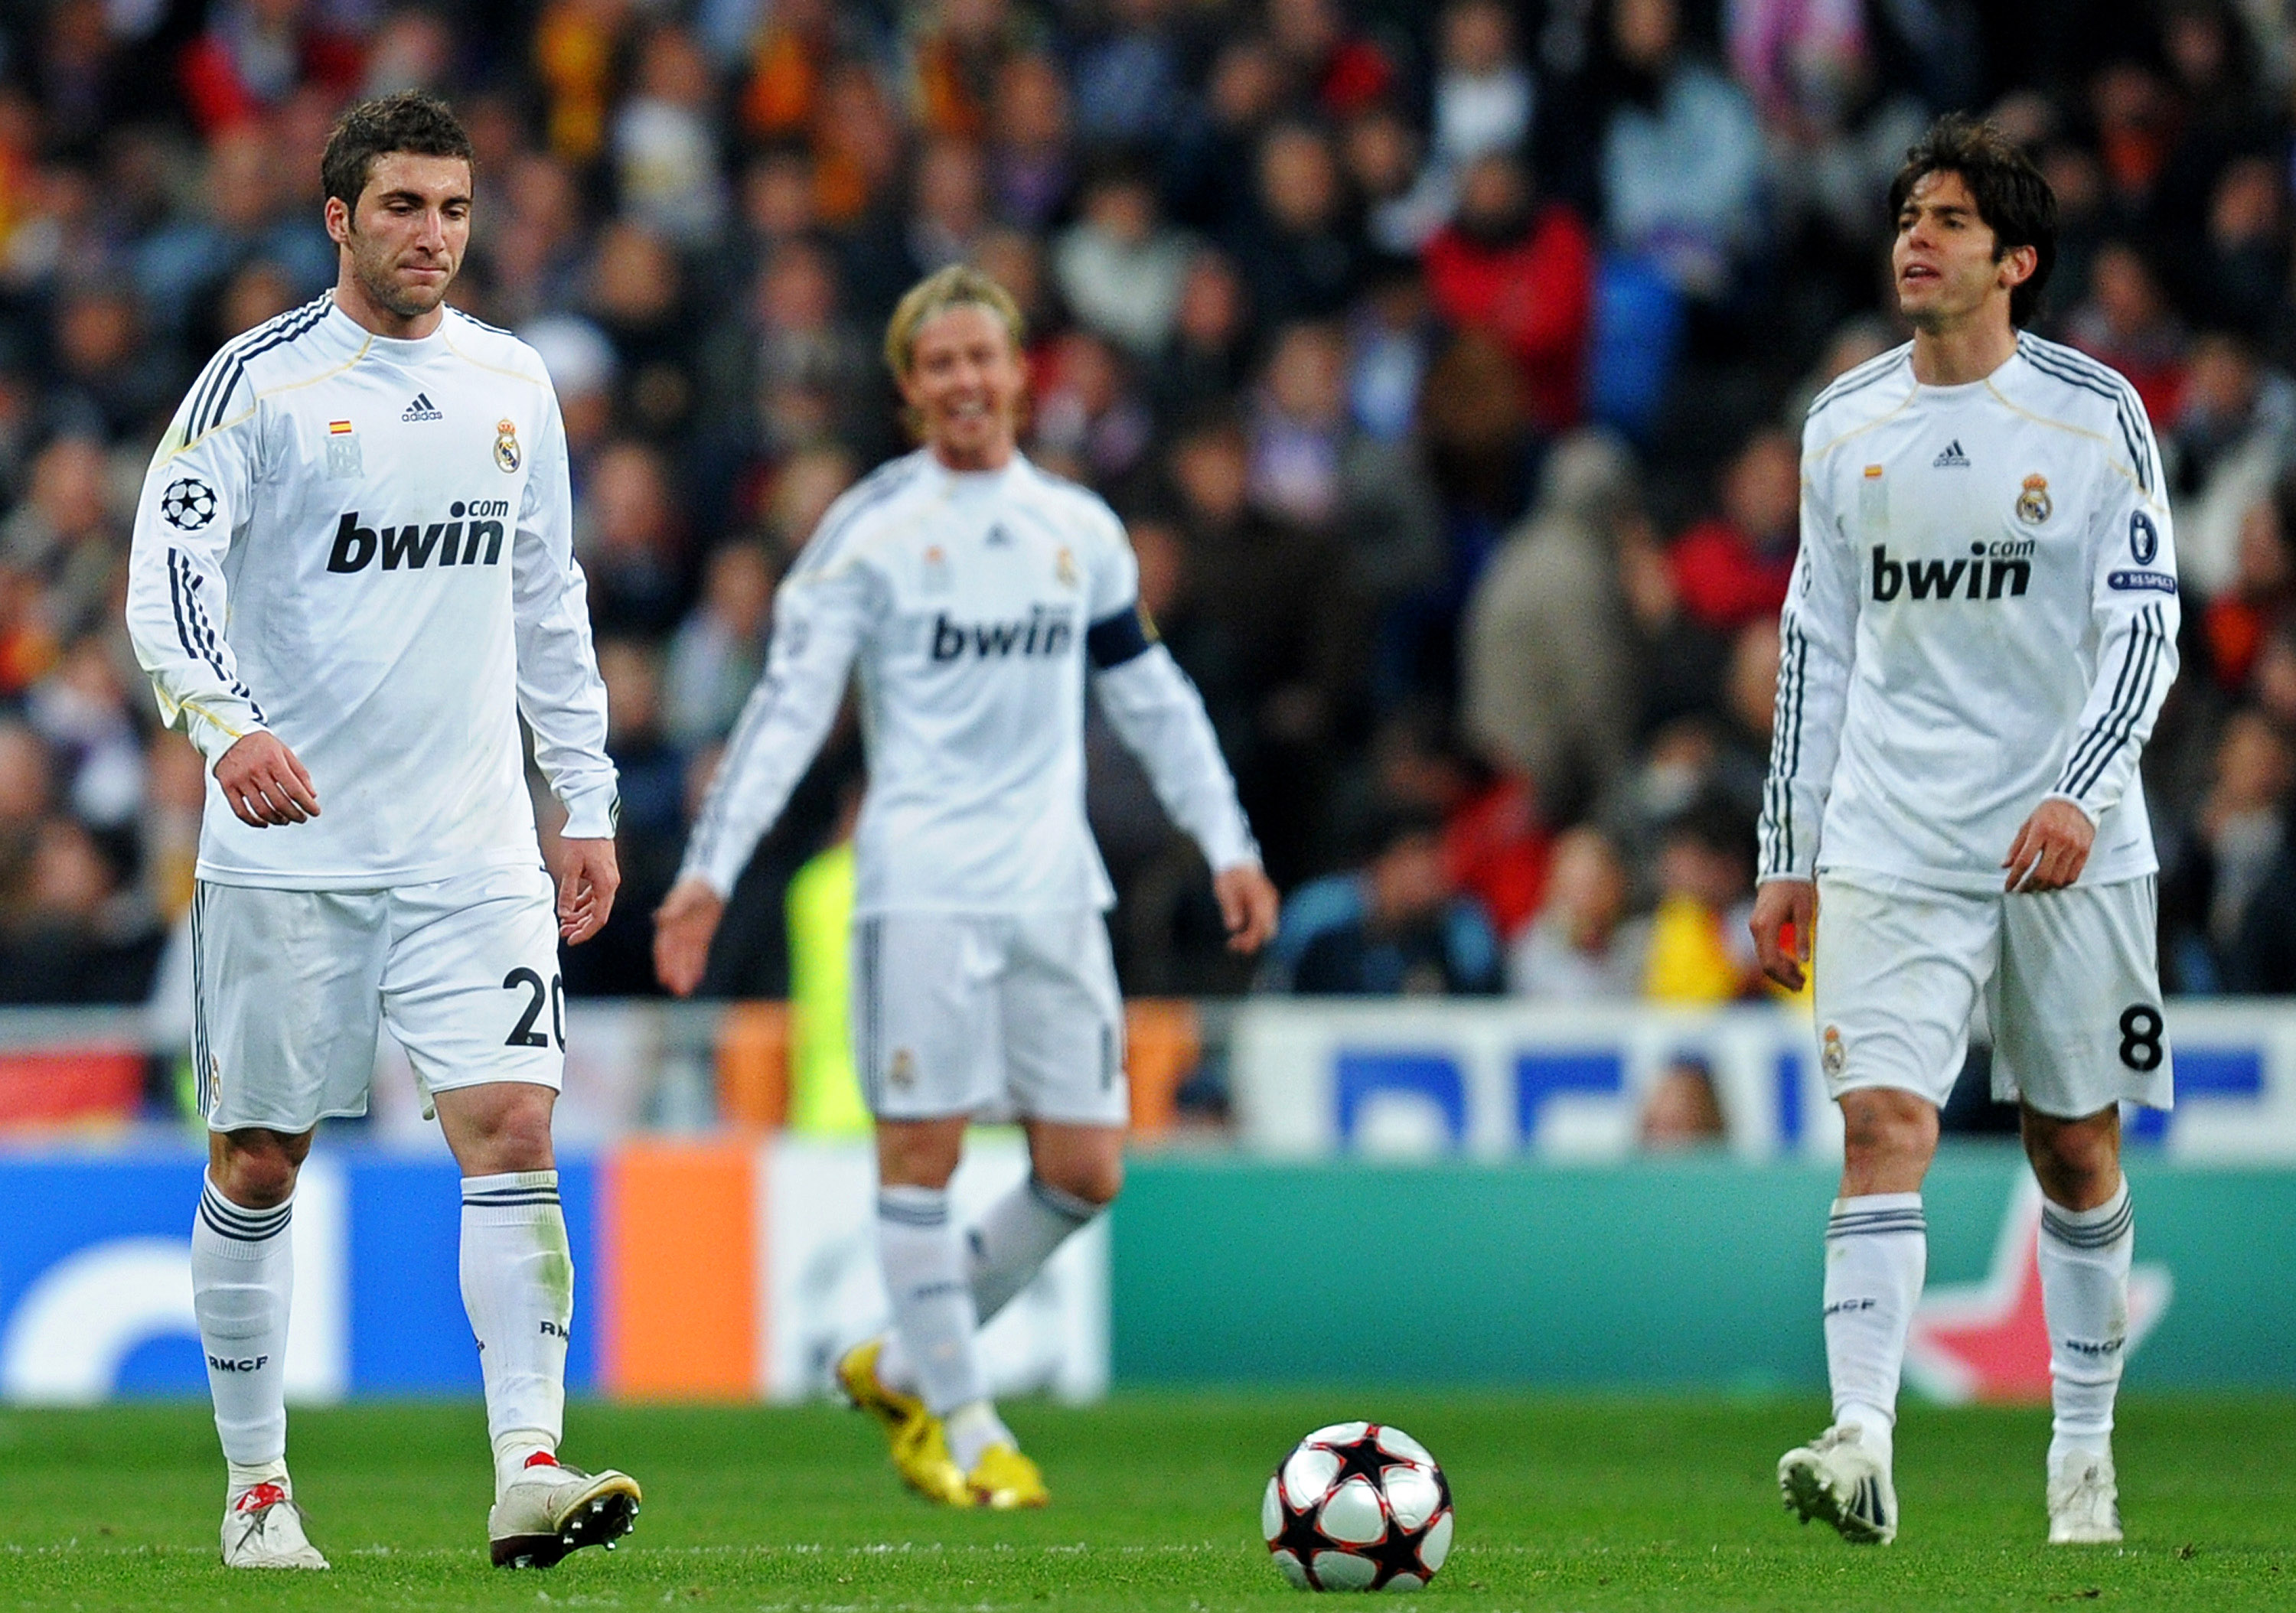 MADRID, SPAIN - MARCH 10:  Gonzalo Higuain (L) of Real Madrid trudges back to the half way line with his team mates Kaka (R) and Jose Maria Gutierrez after conceding a goal during the UEFA Champions League round of 16 second leg match between Real Madrid